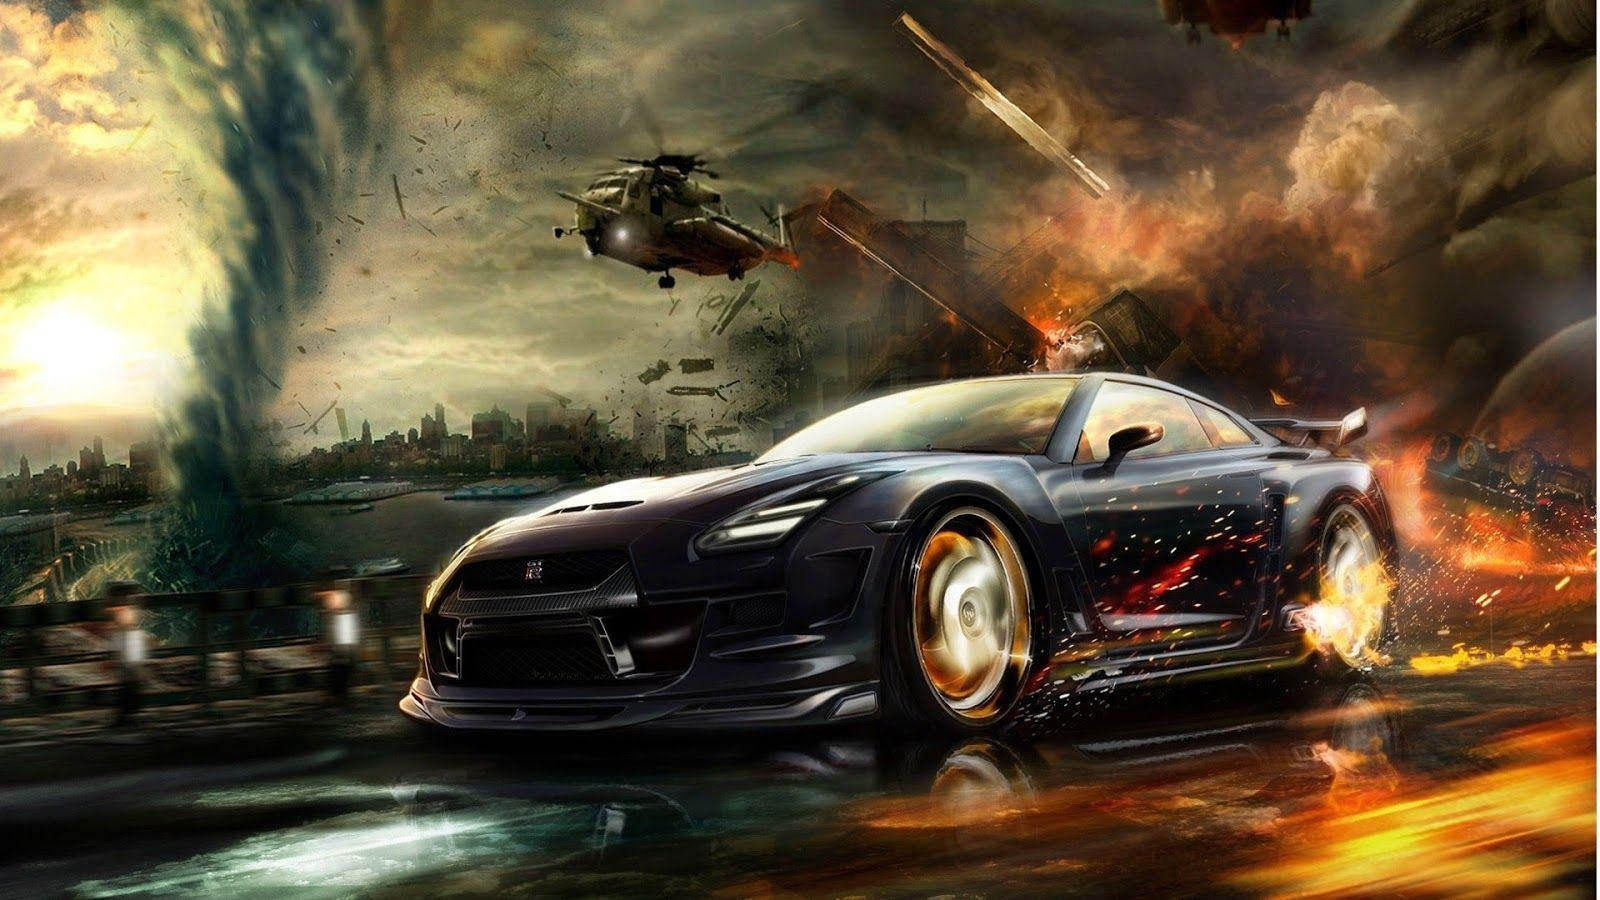 Cool Car Phone Wallpapers